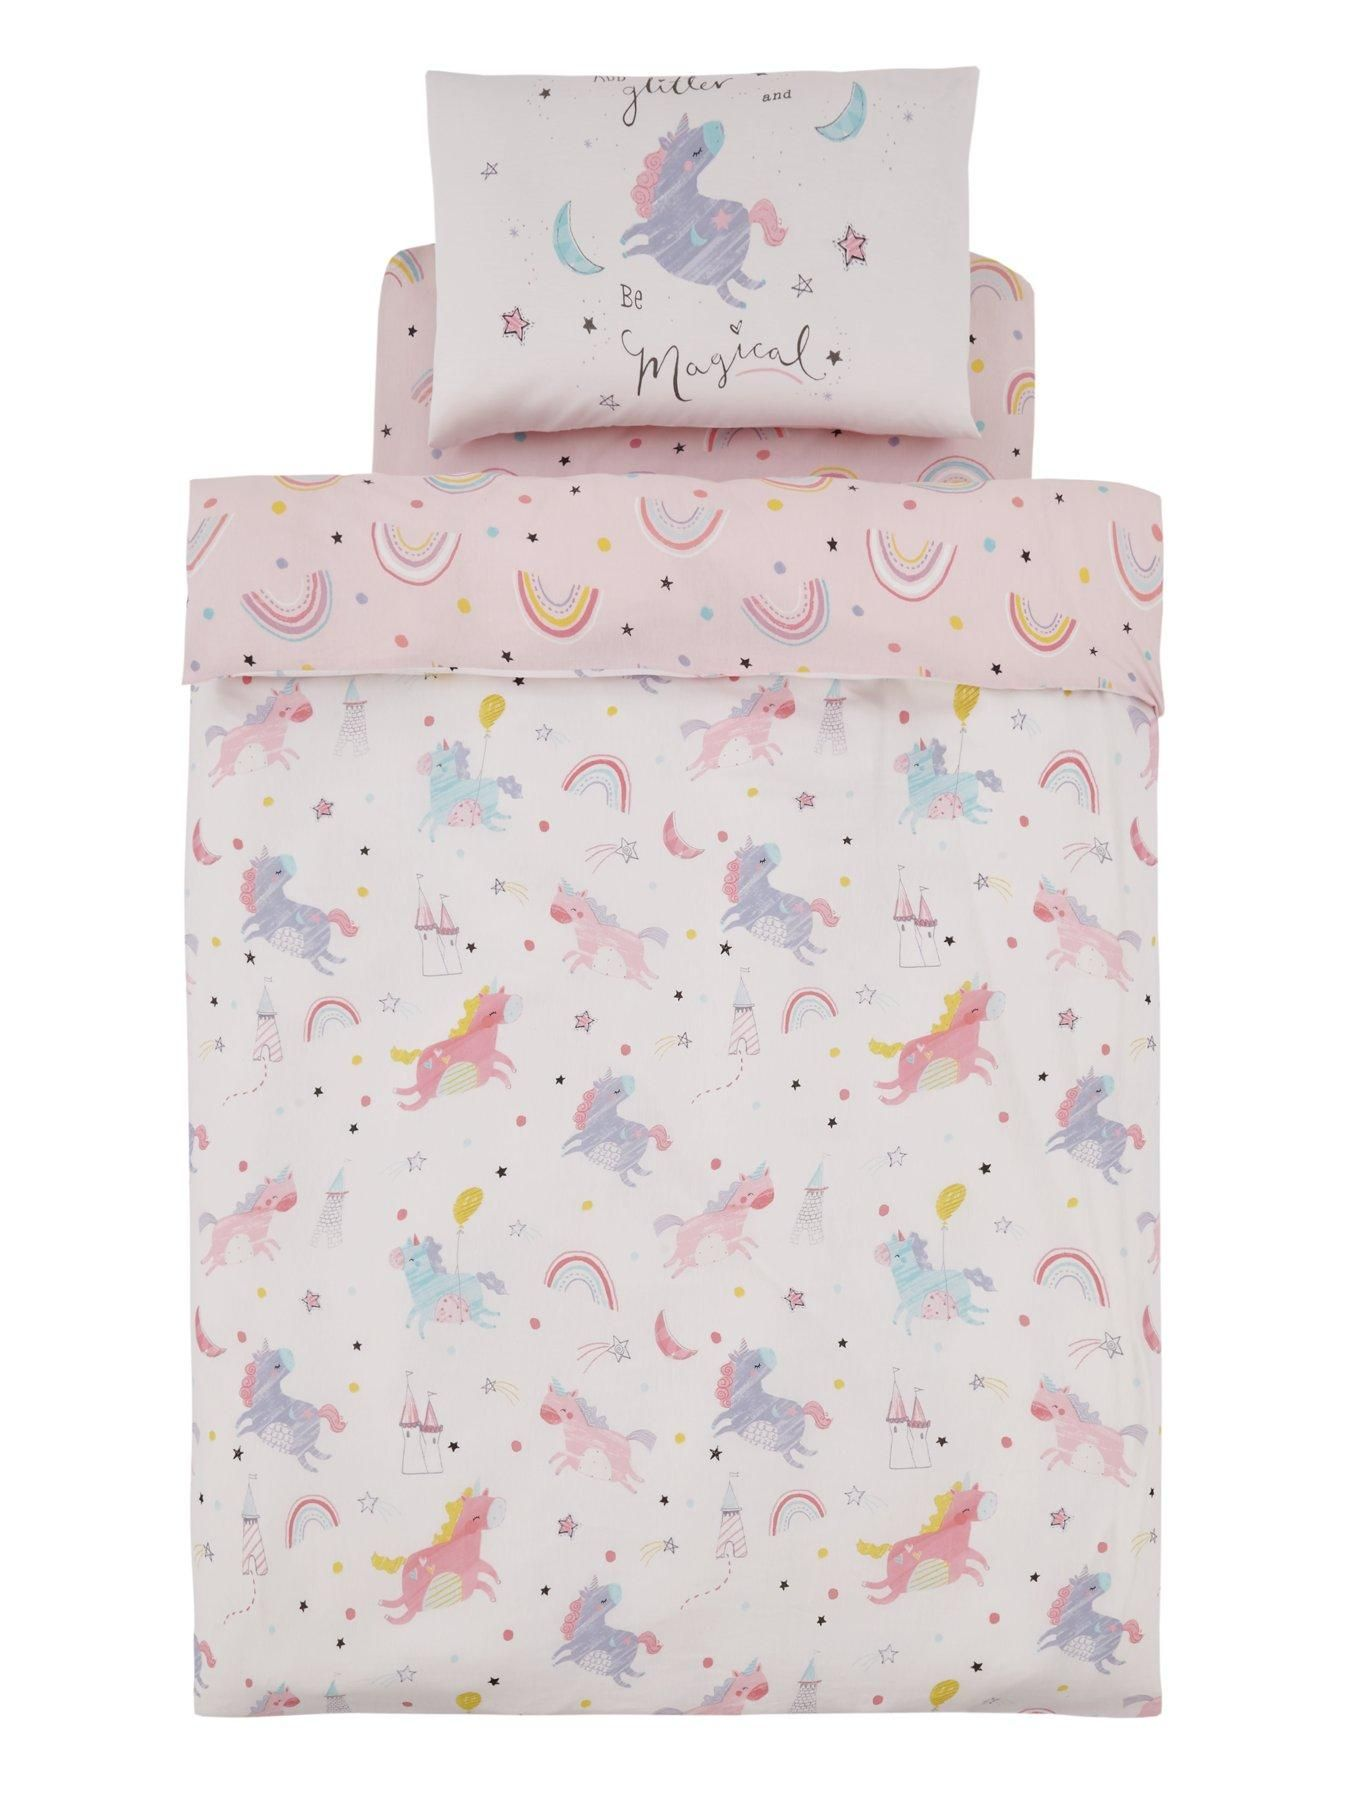 Catherine Lansfield Magical Unicorns Cotton Rich Duvet Cover and Pillowcase Set Bring a fairy tale